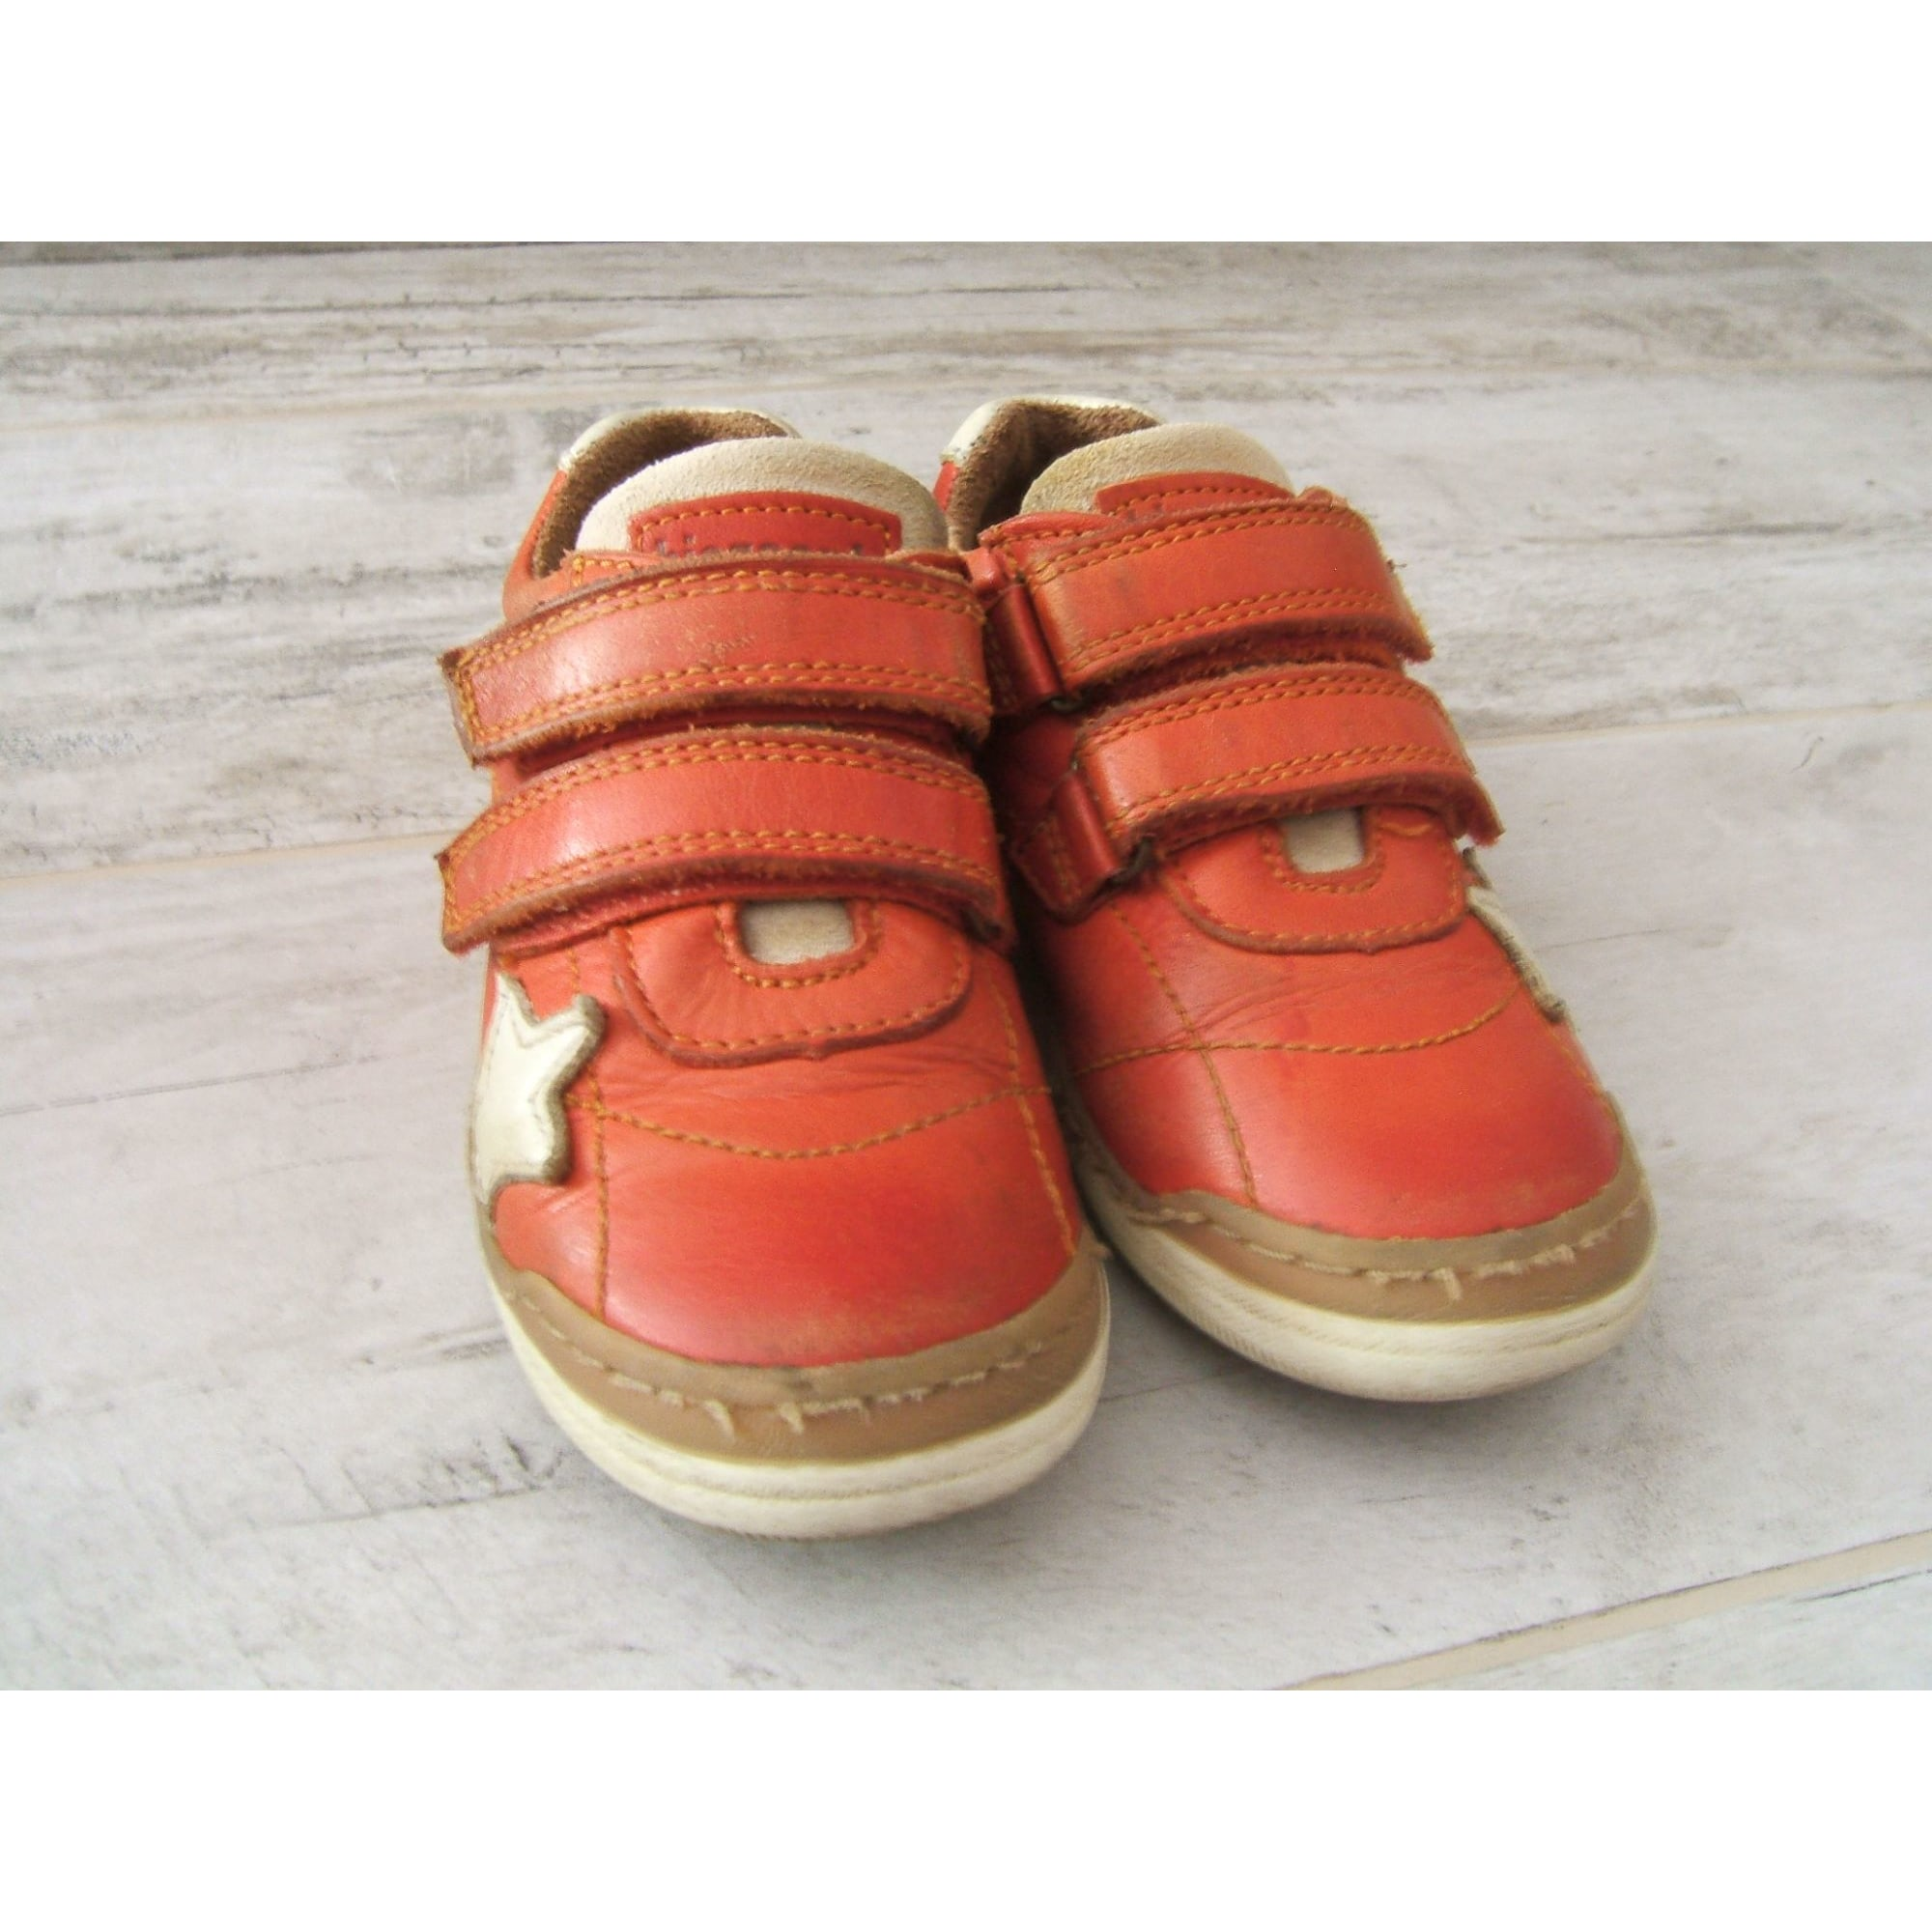 better fashion styles crazy price Chaussures à scratch